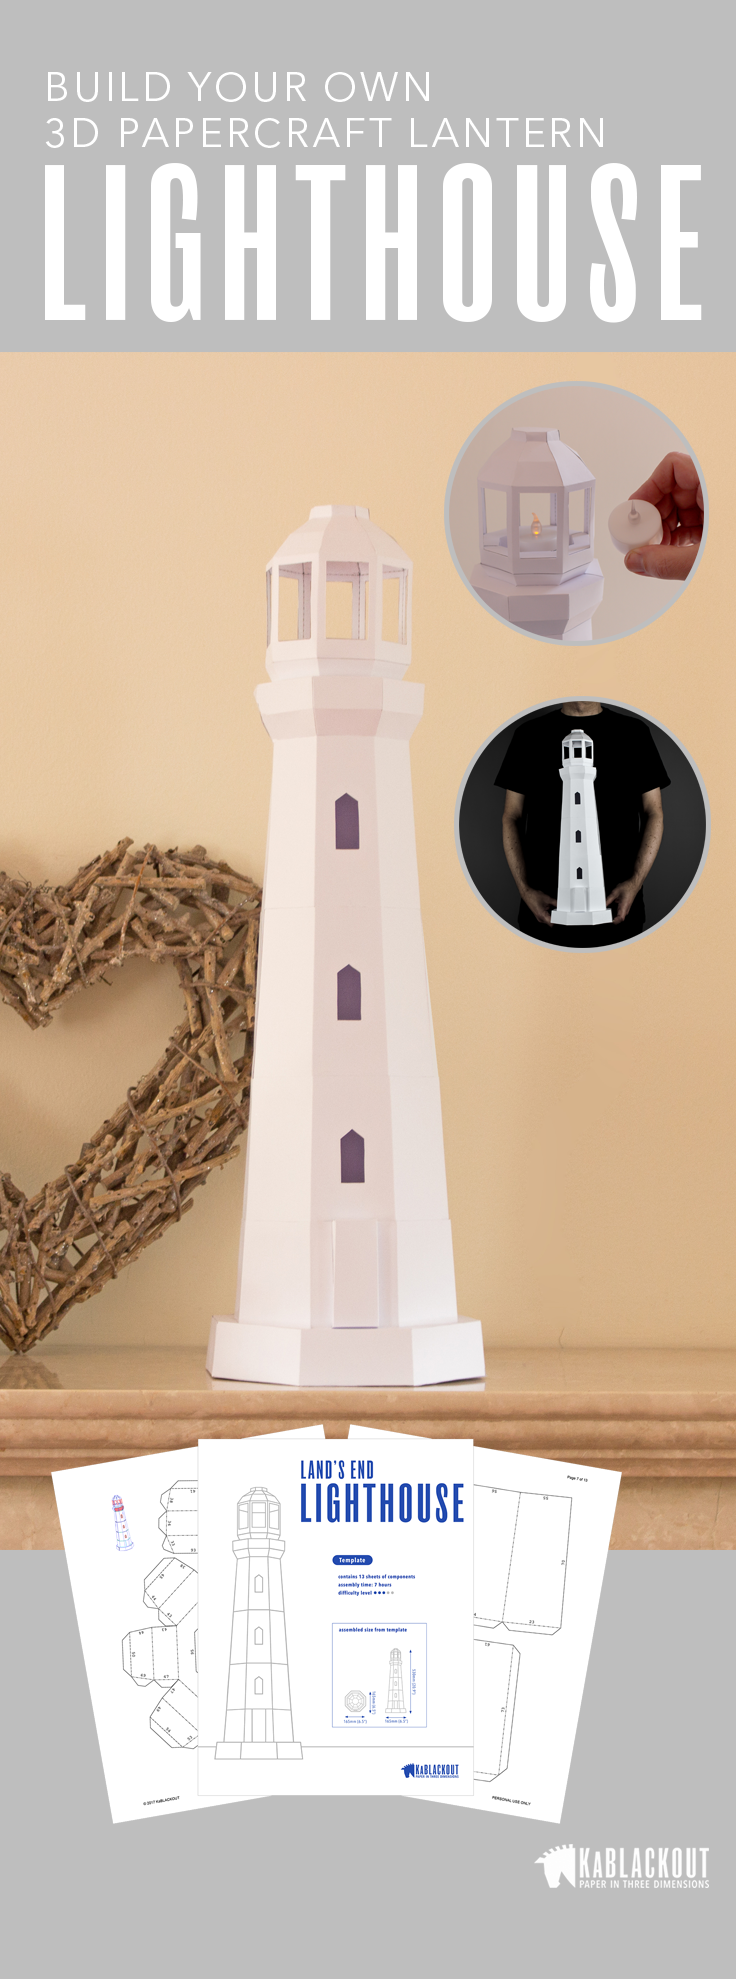 Lighthouse papercraft diy project make your own paper lighthouse make your own paper lighthouse model print cut stick and assemble from pdf template choose your own colour scheme and make some nautical beach decor for pronofoot35fo Choice Image